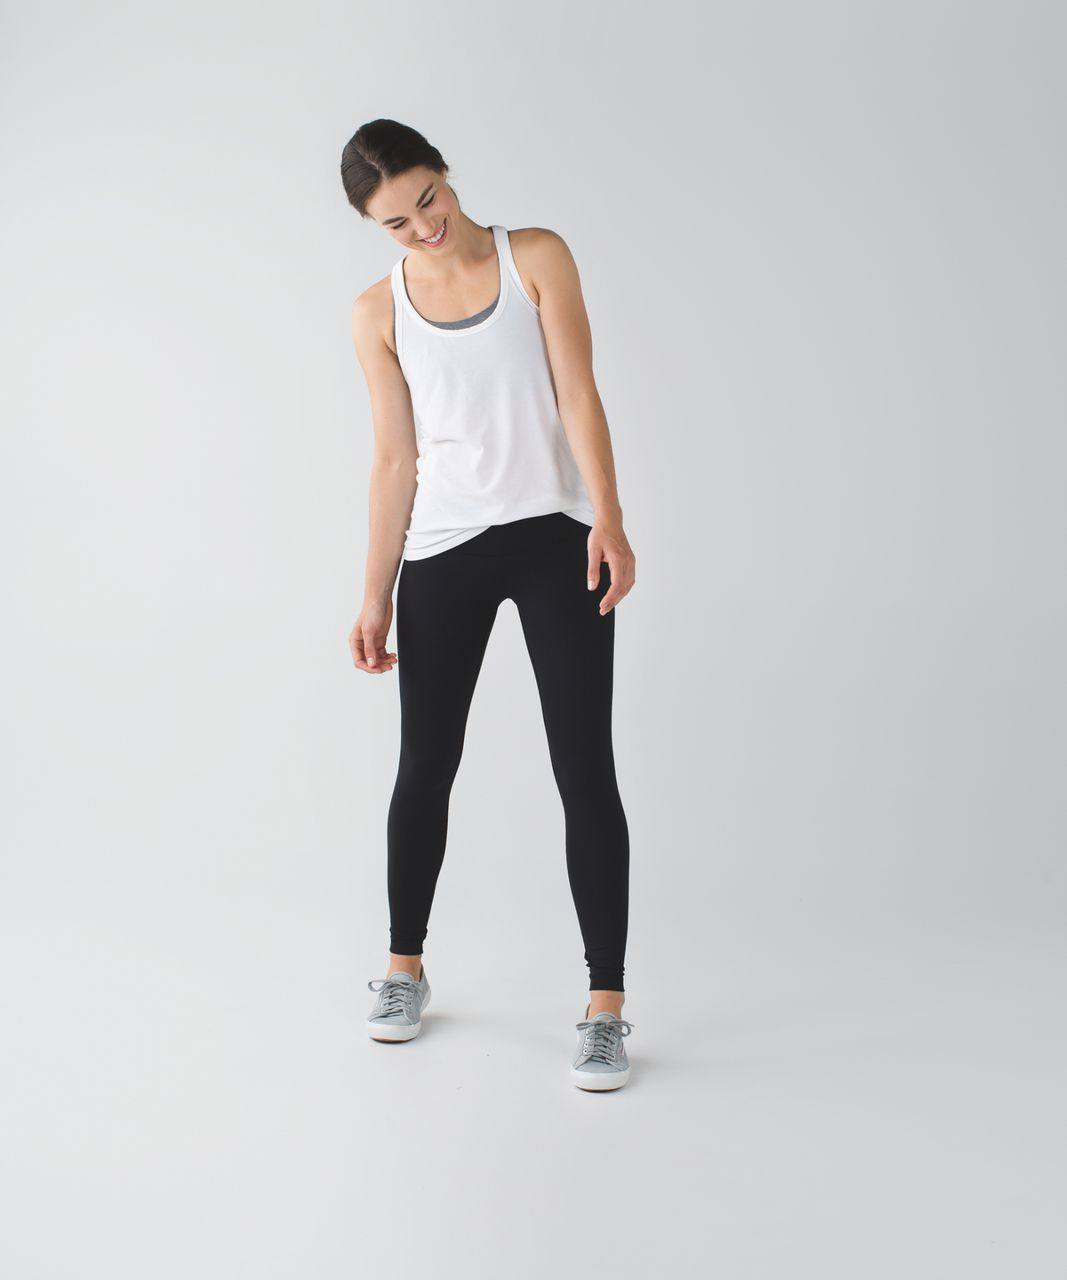 Lululemon Wunder Under Pant (Full-On Luon) - Black